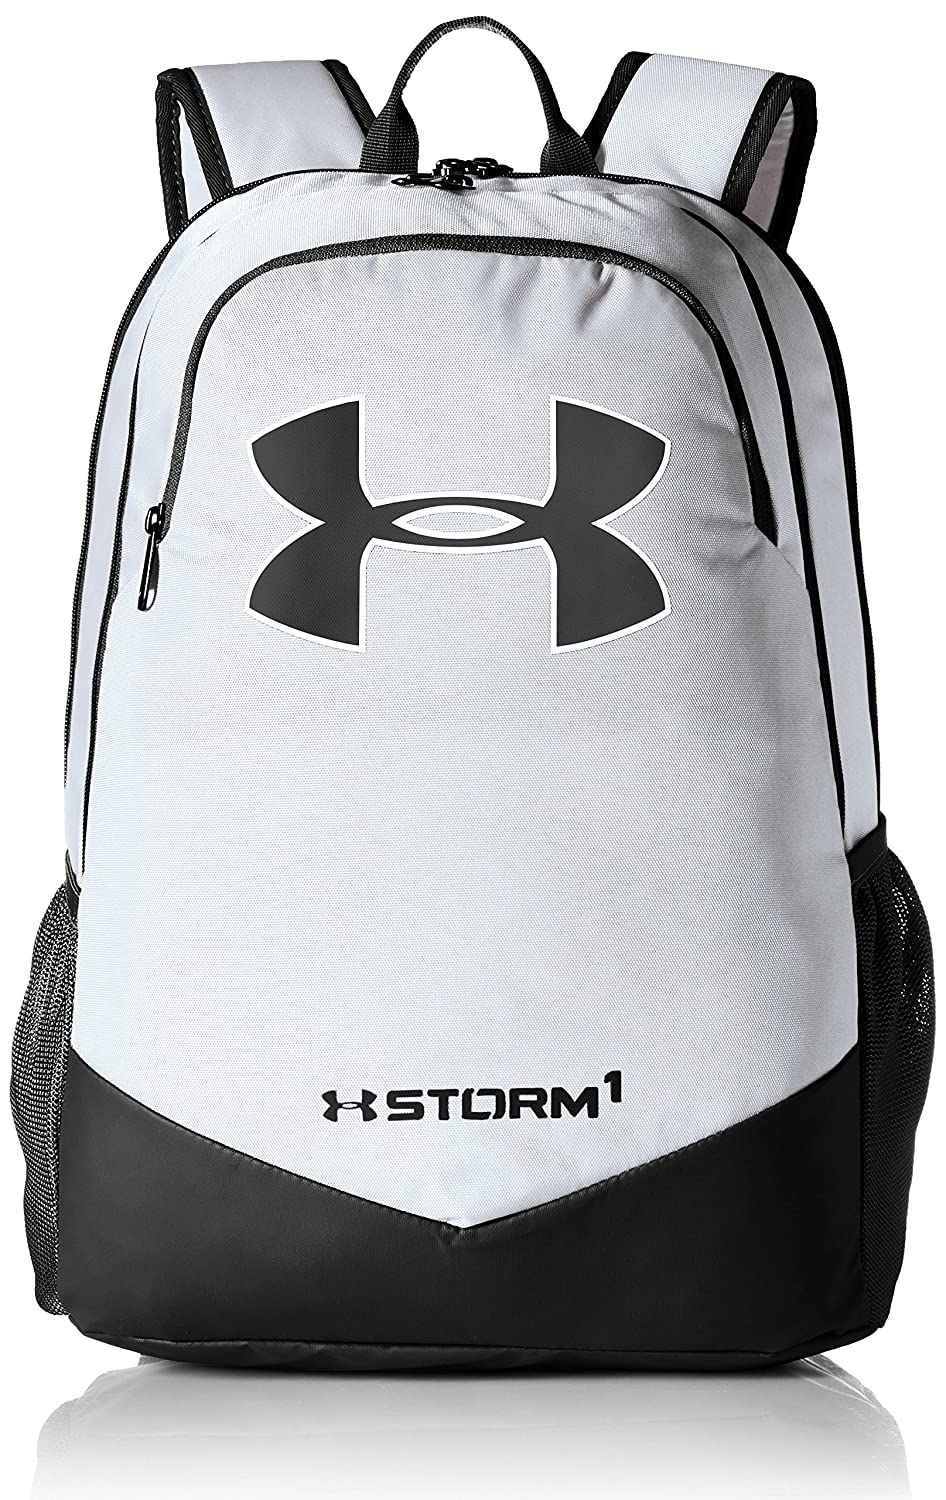 281a52b568 Amazon.com  Under Armour Boy s Storm Scrimmage Backpack  Sports   Outdoors